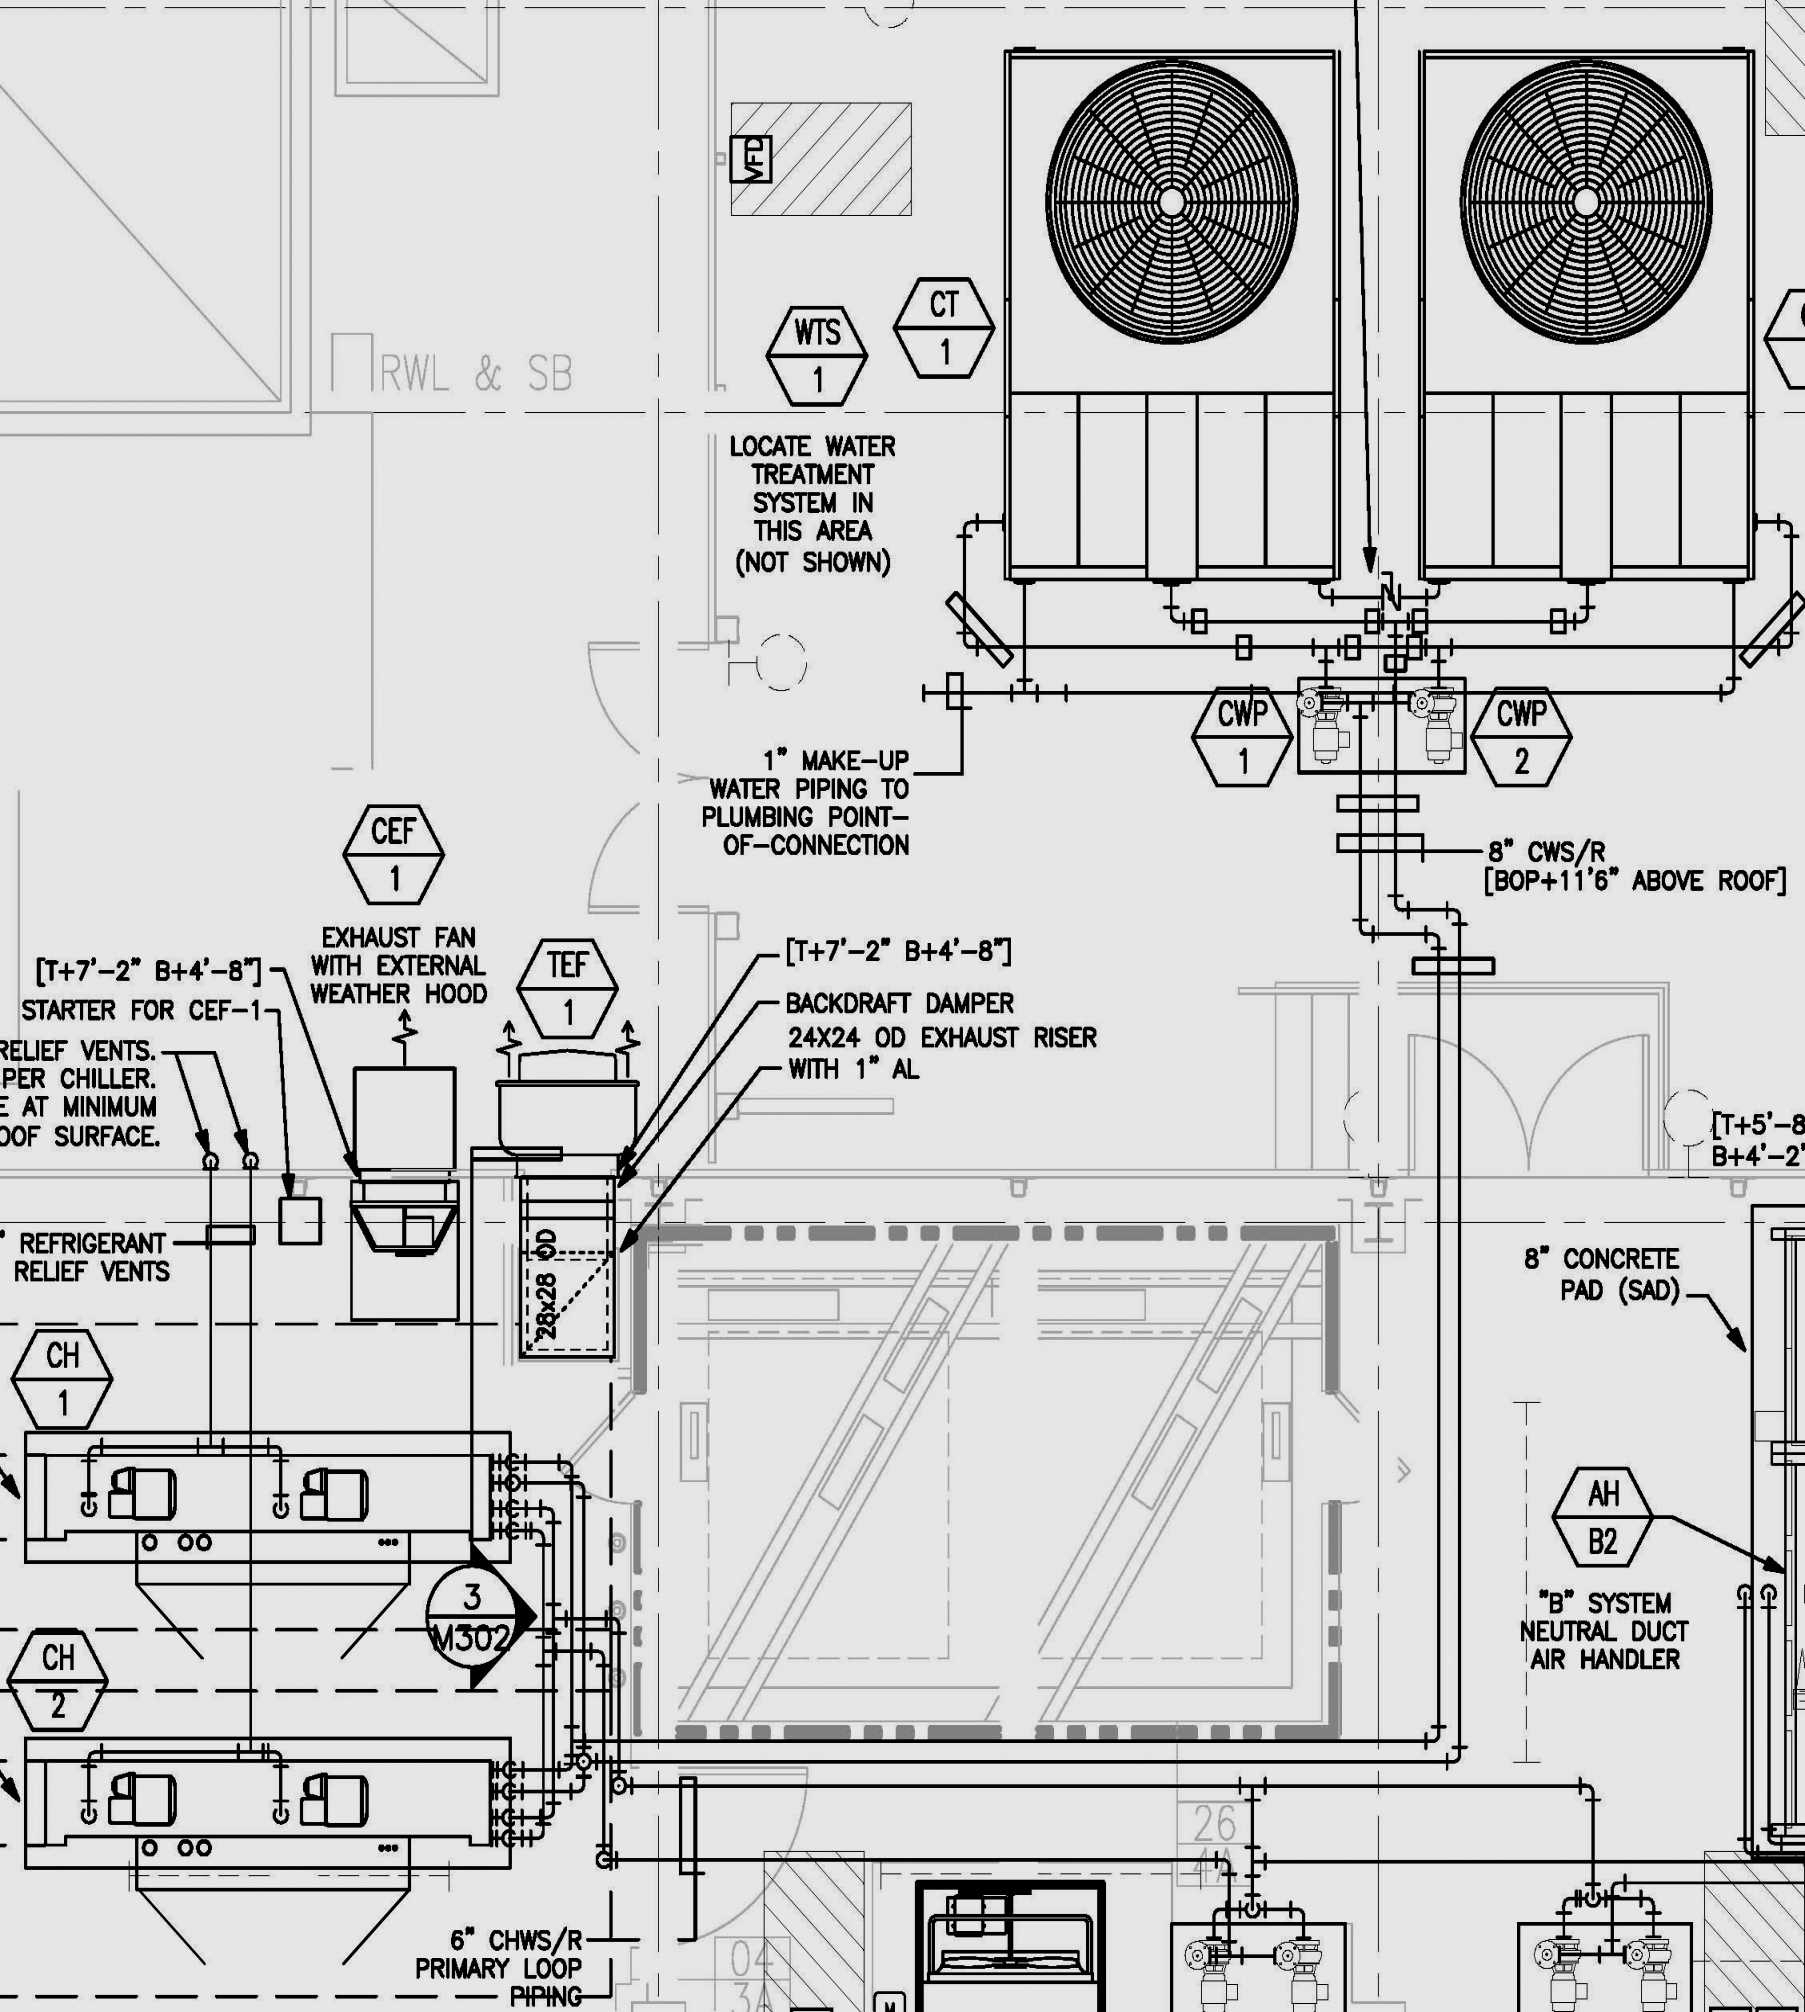 Onan Rv Generator Wiring Diagram - Wiring Diagrams - Onan Rv Generator Wiring Diagram